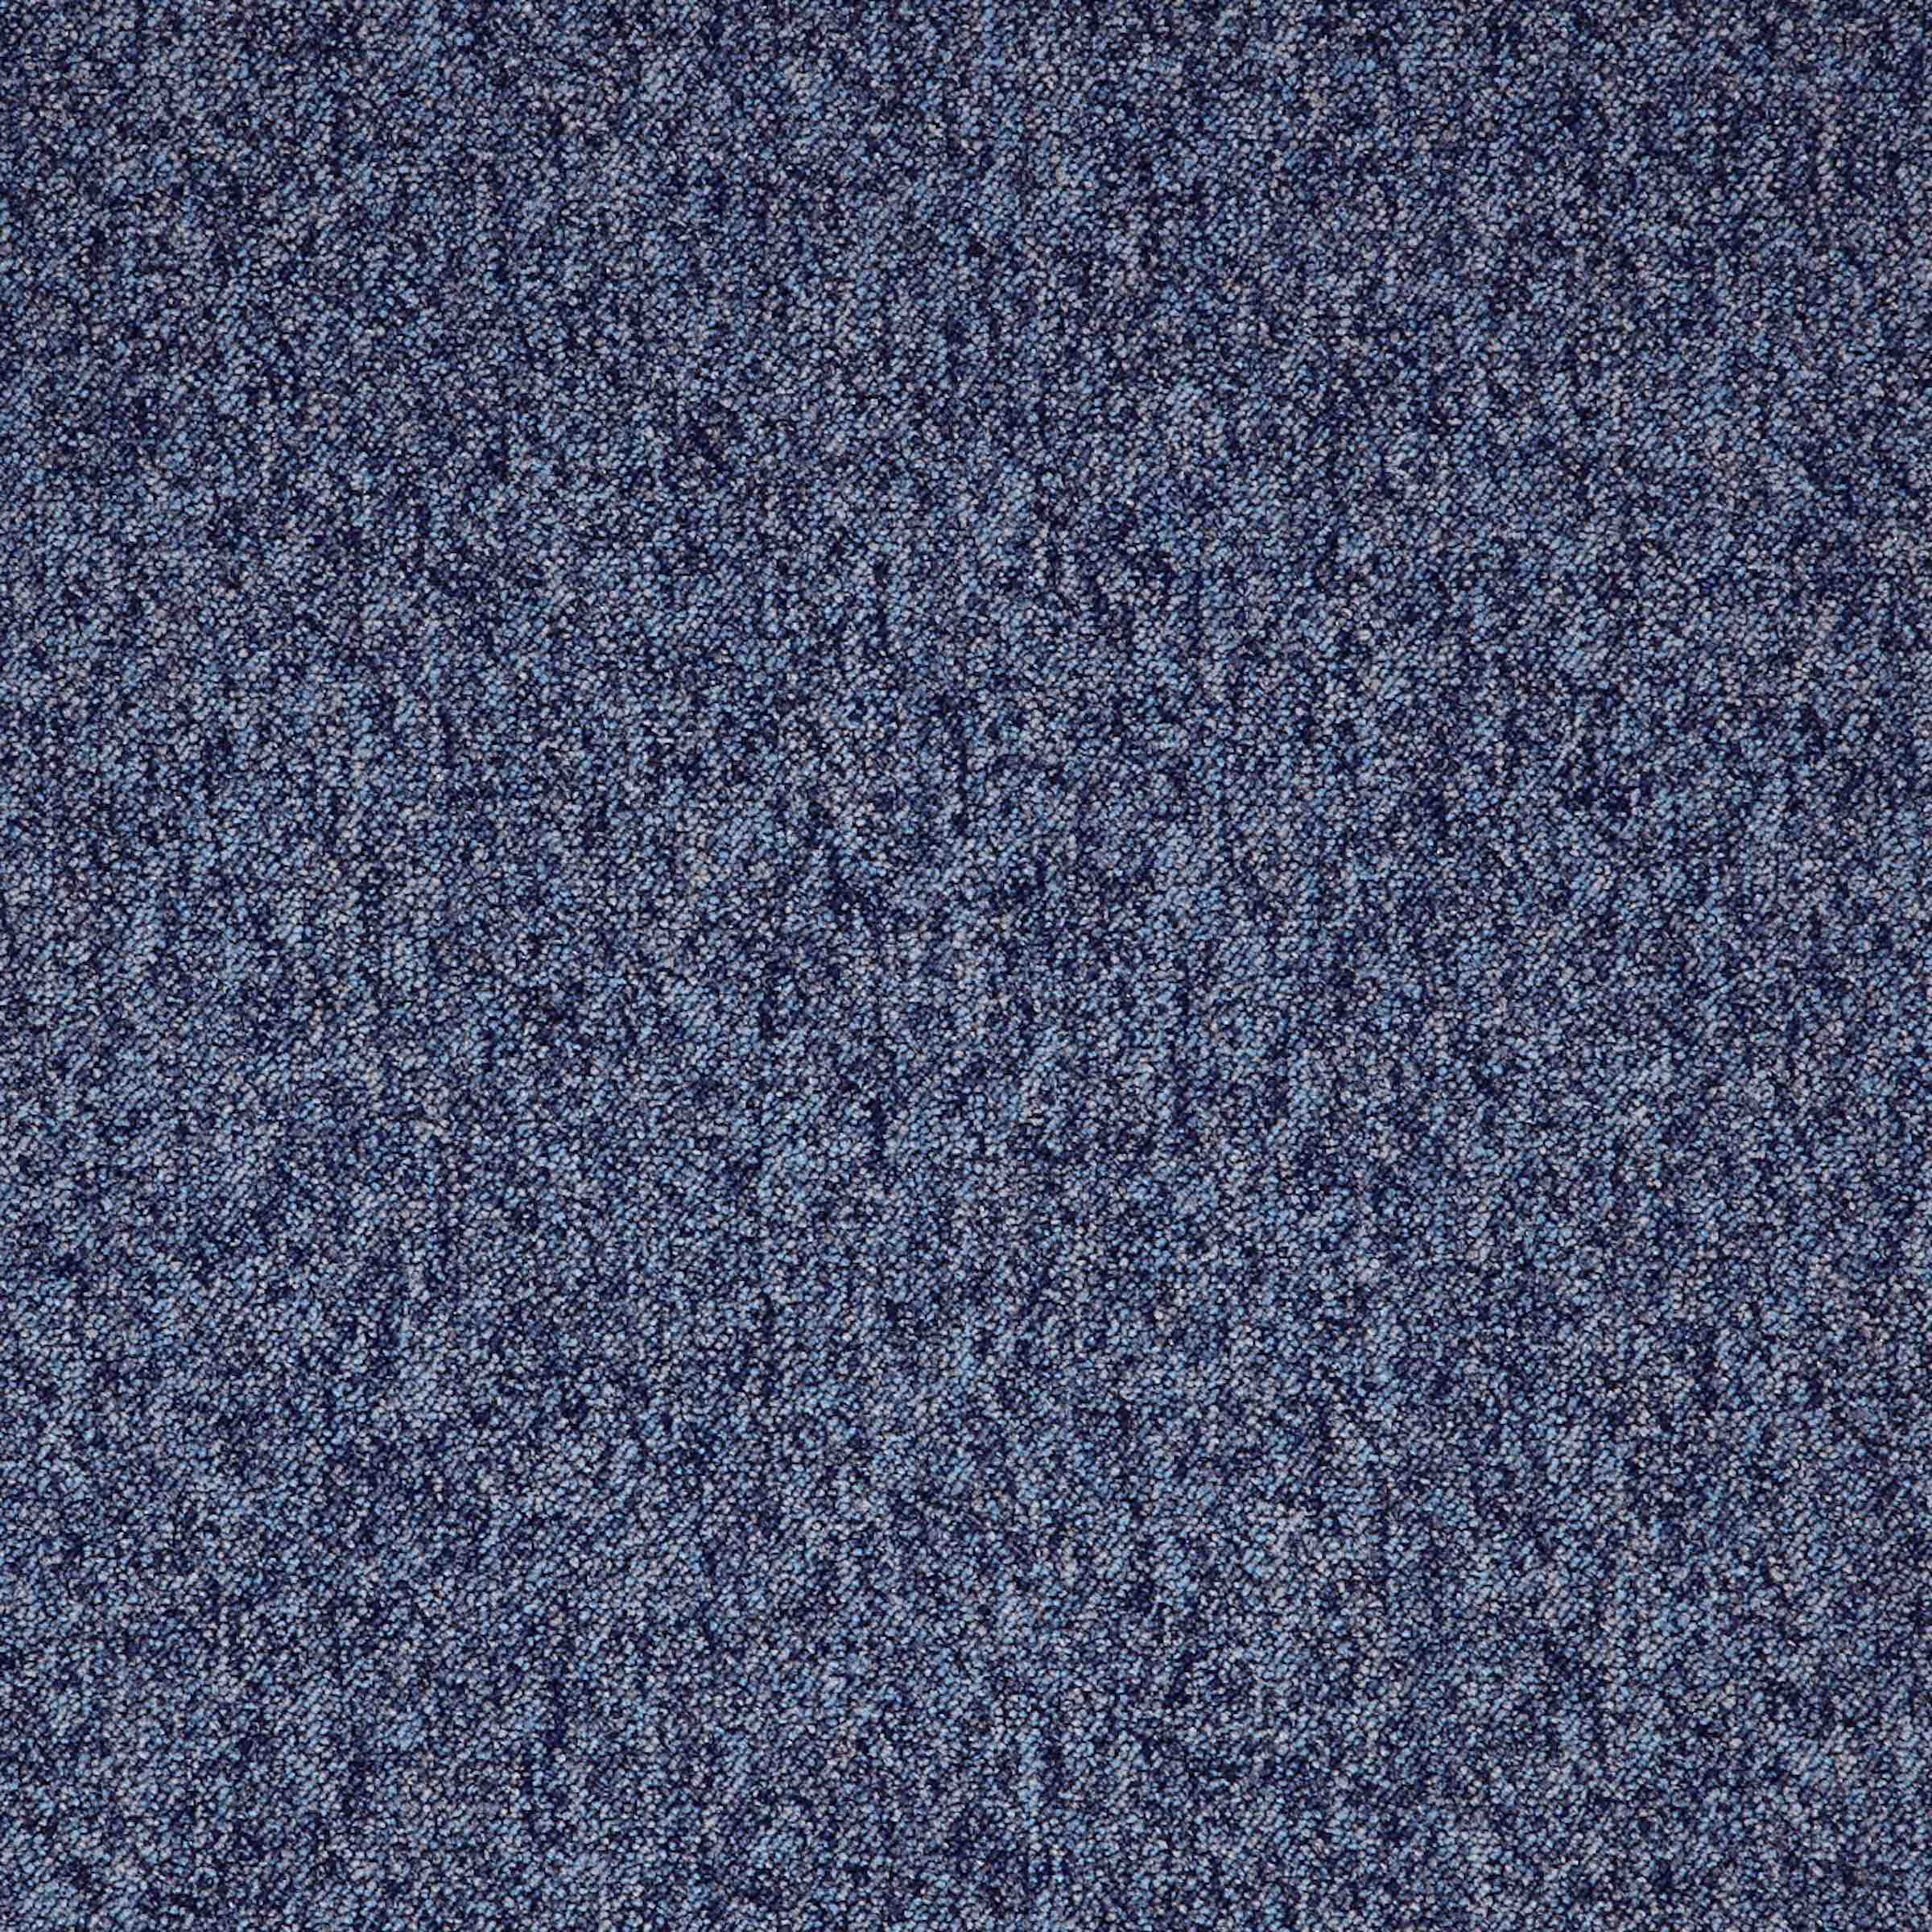 Toccarre | Azzurra | Paragon Carpet Tiles | Commercial Carpet Tiles